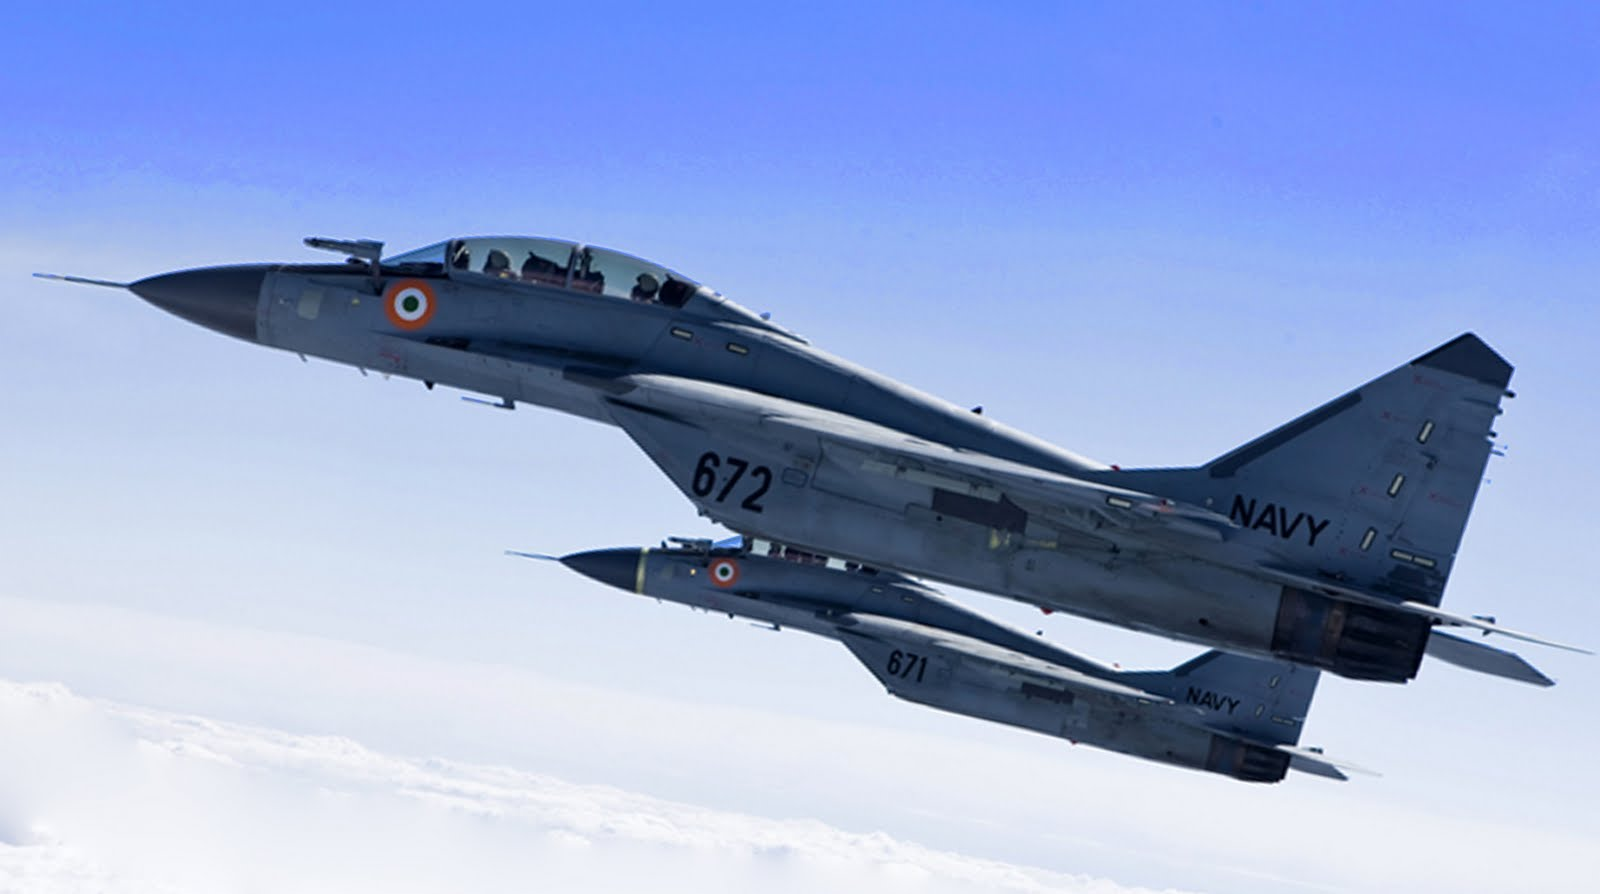 IAF MiG-29 Fighter Aircraft Crashes in Western India